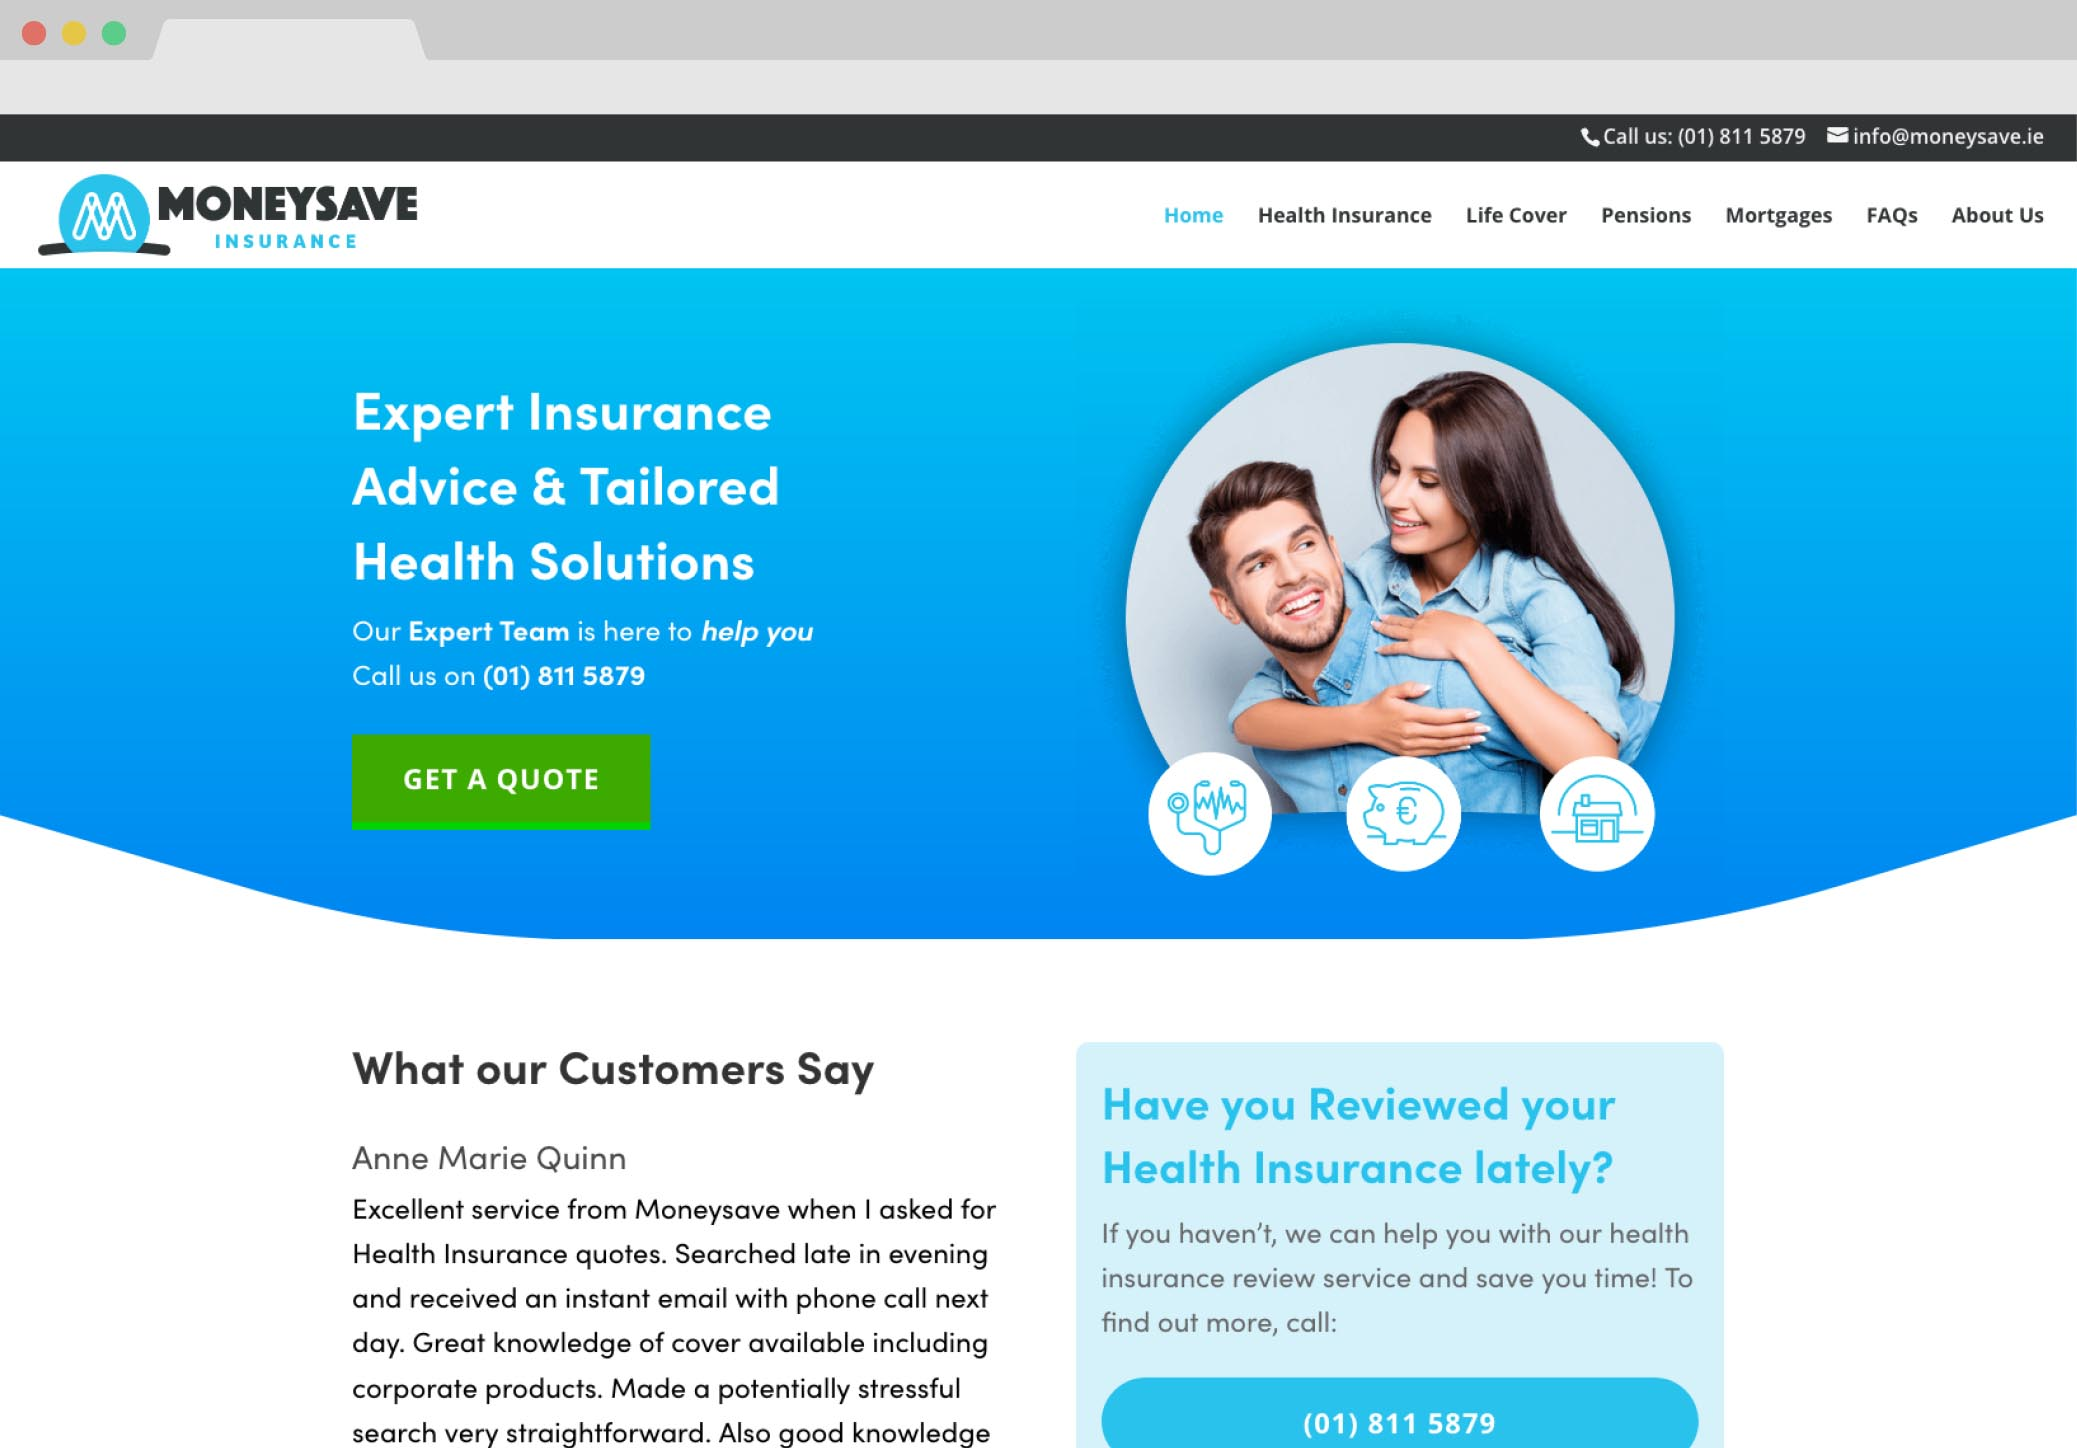 Moneysave Insurance